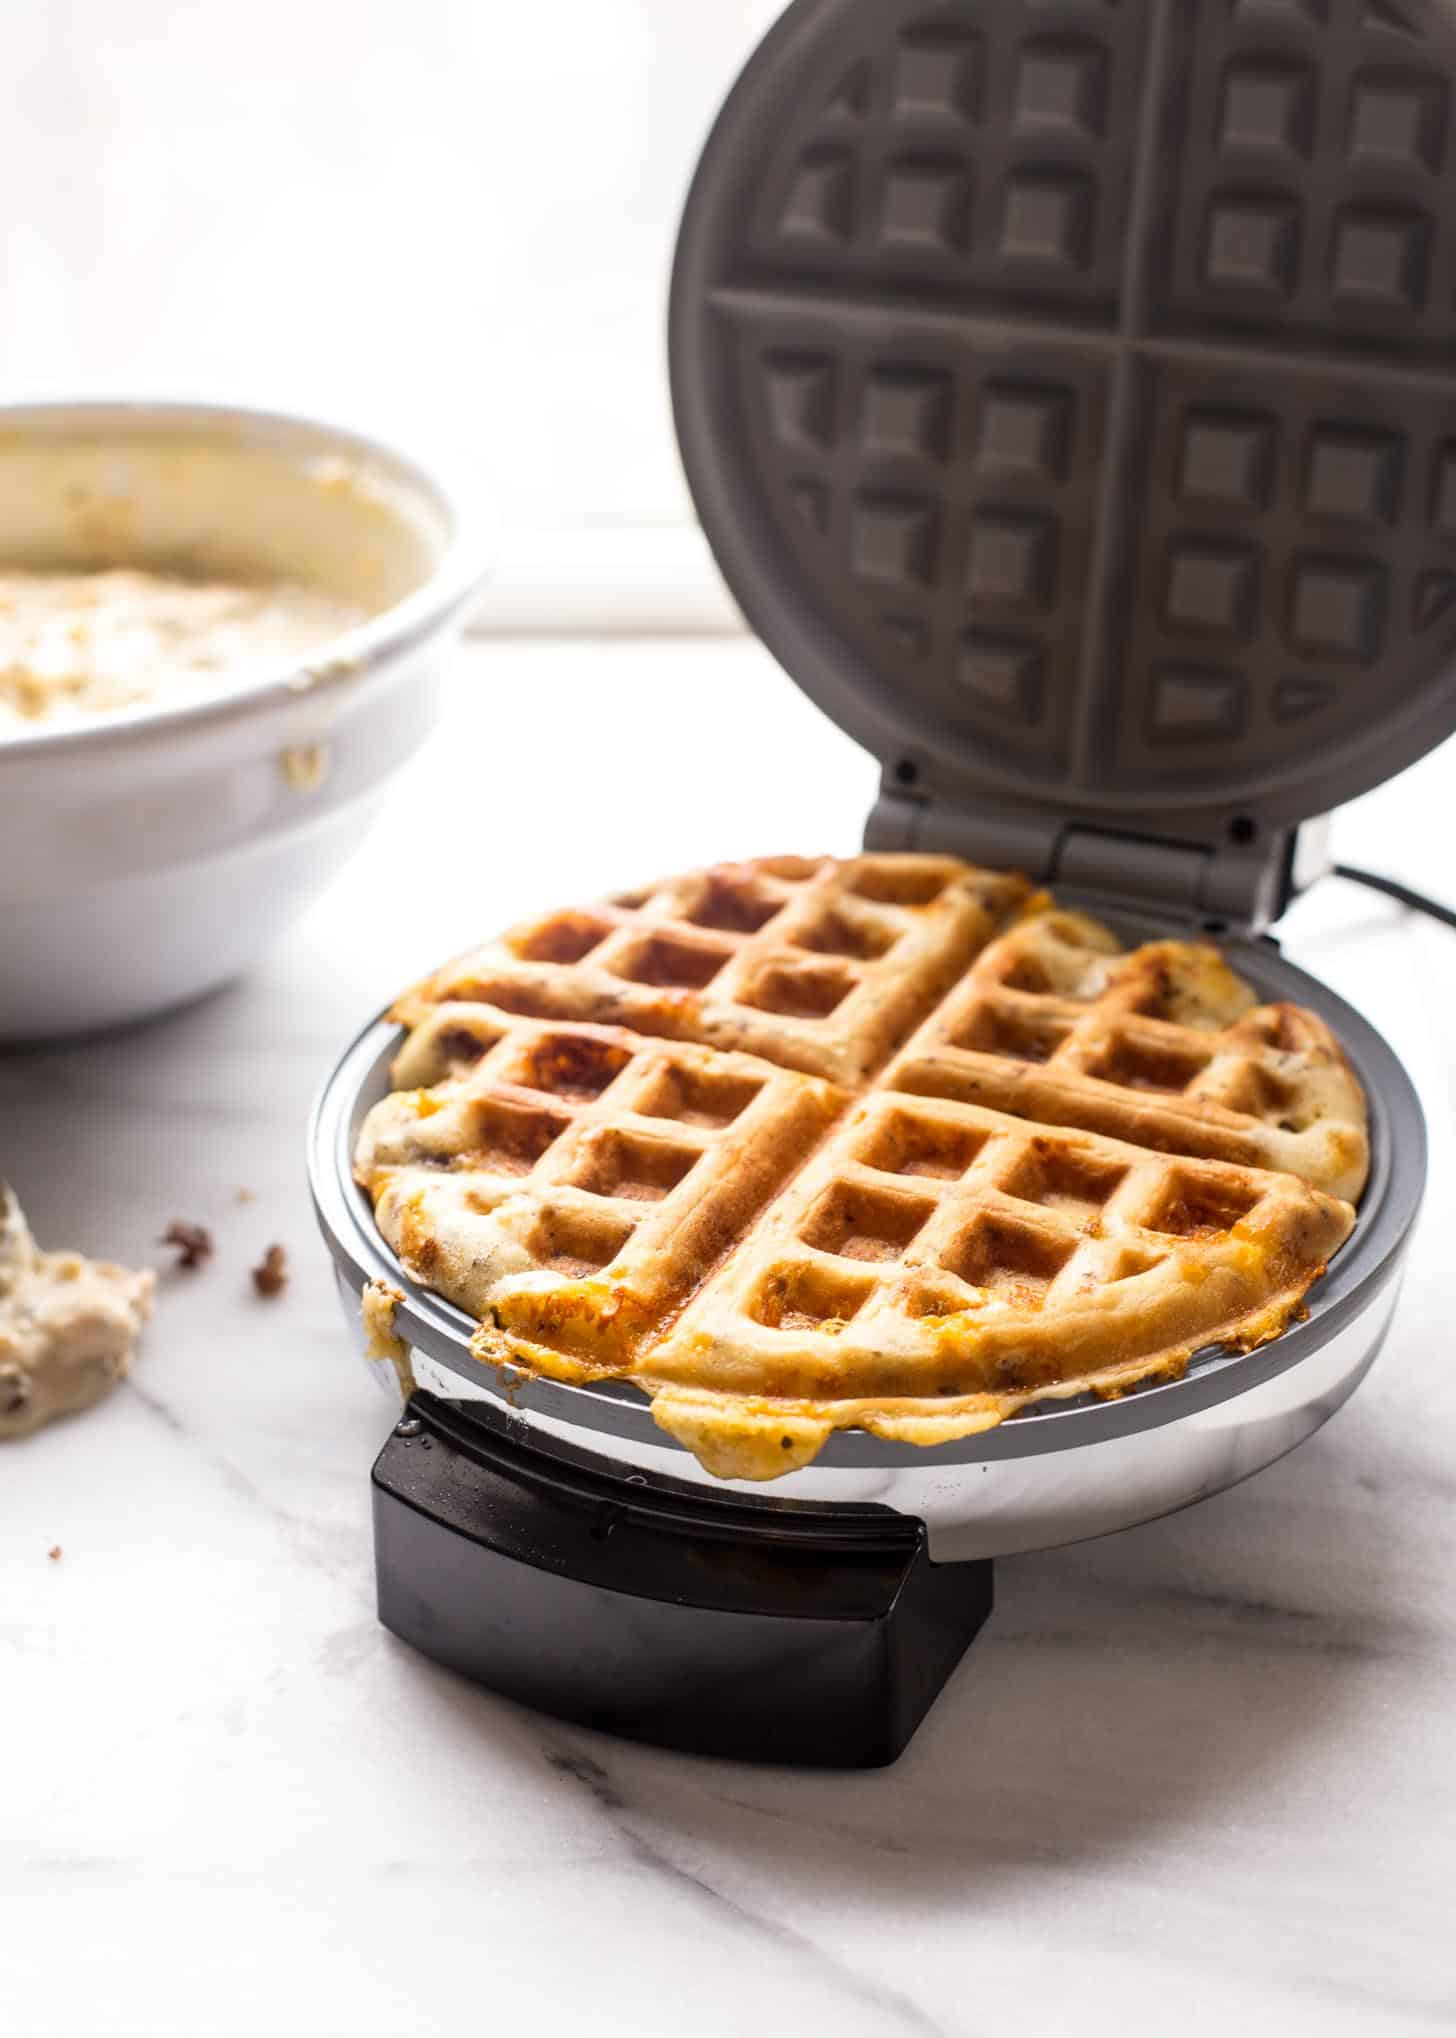 cooking savory waffles in a waffle maker